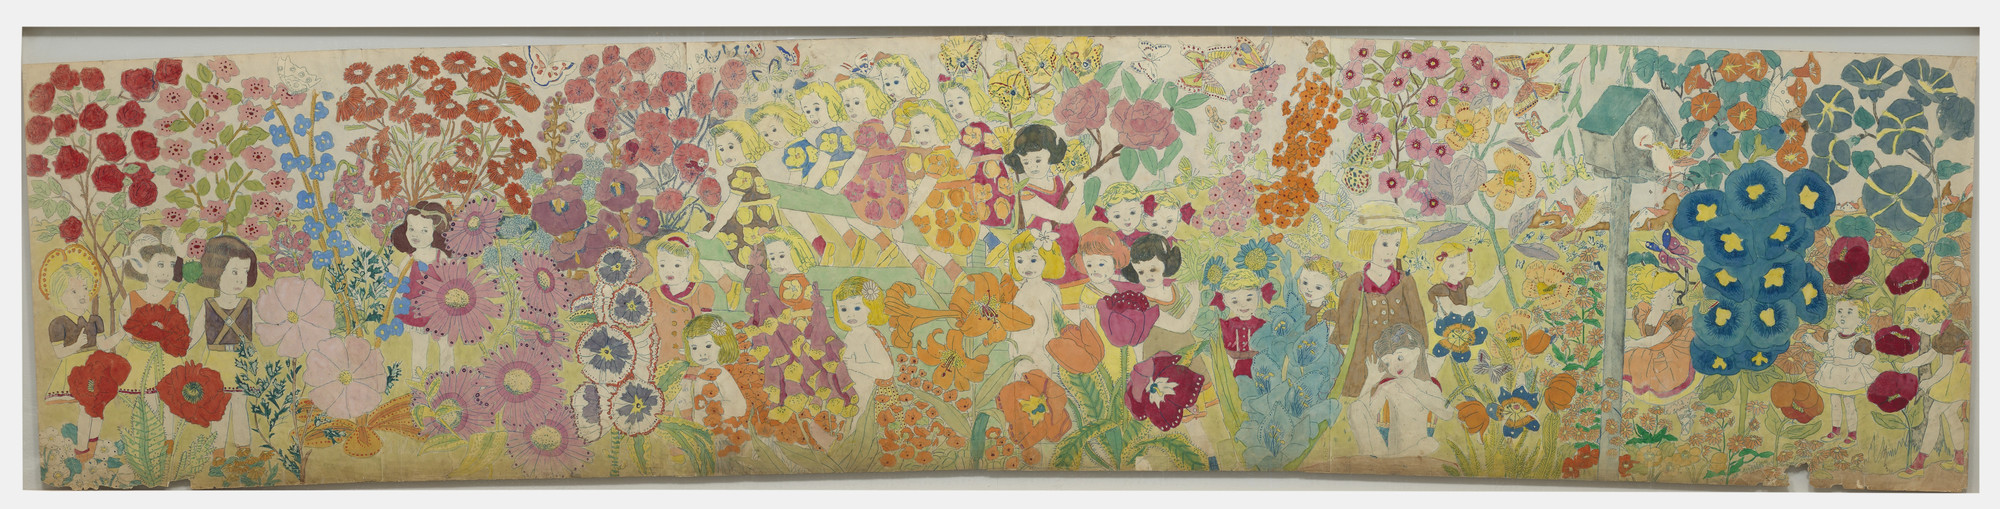 Henry Darger. a) Untitled (Overall flowers) b) Untitled (Beautiful girls sitting around with giant cactus in center),. (n.d.)